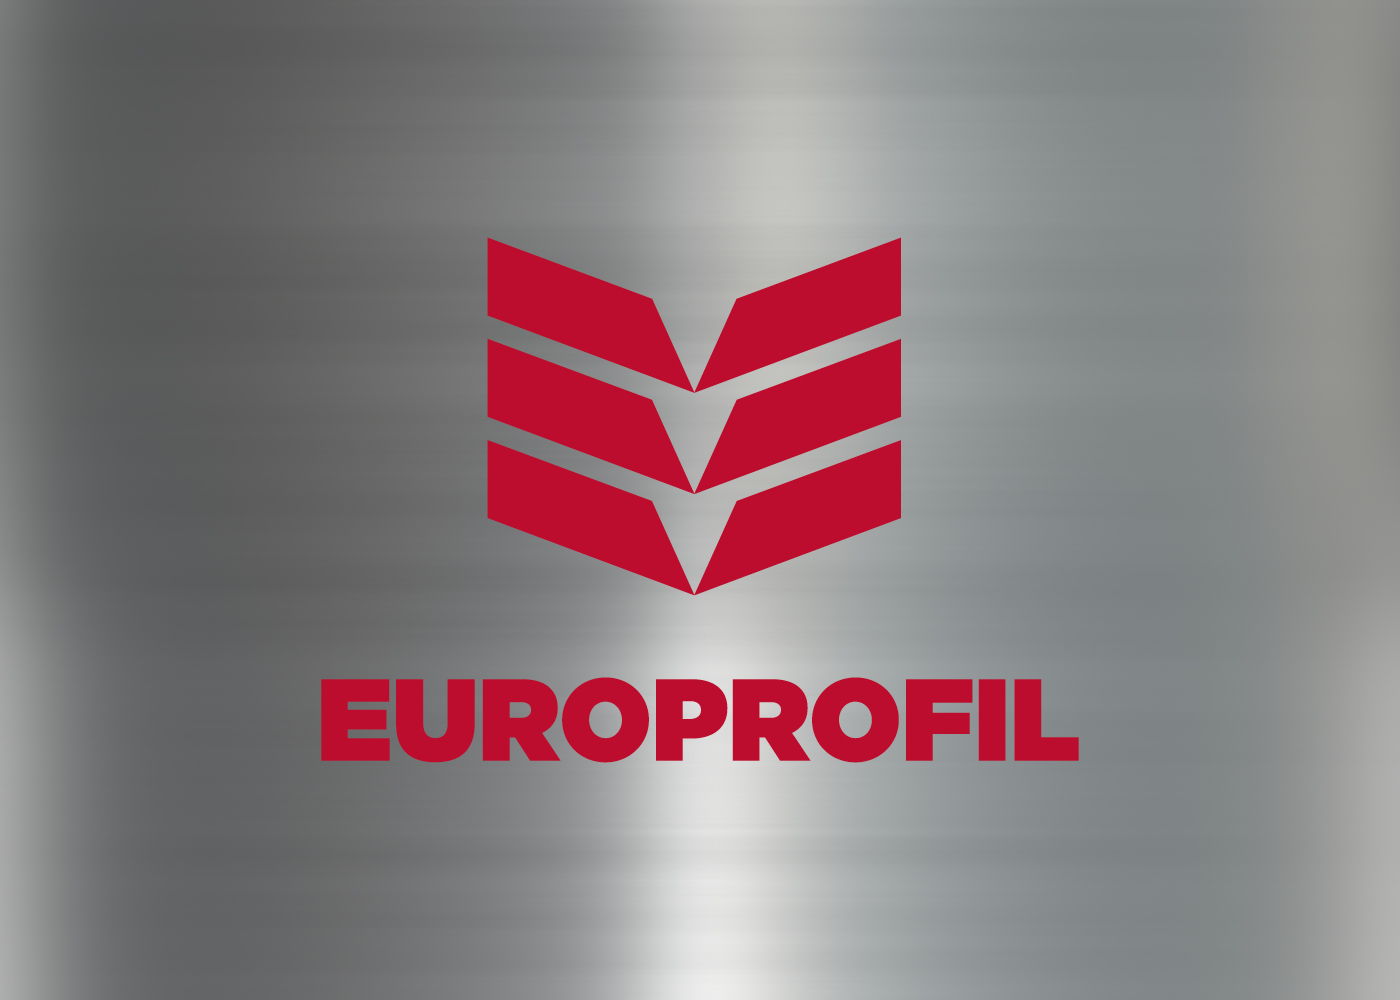 Corporate identity design  Europrofil & Co.